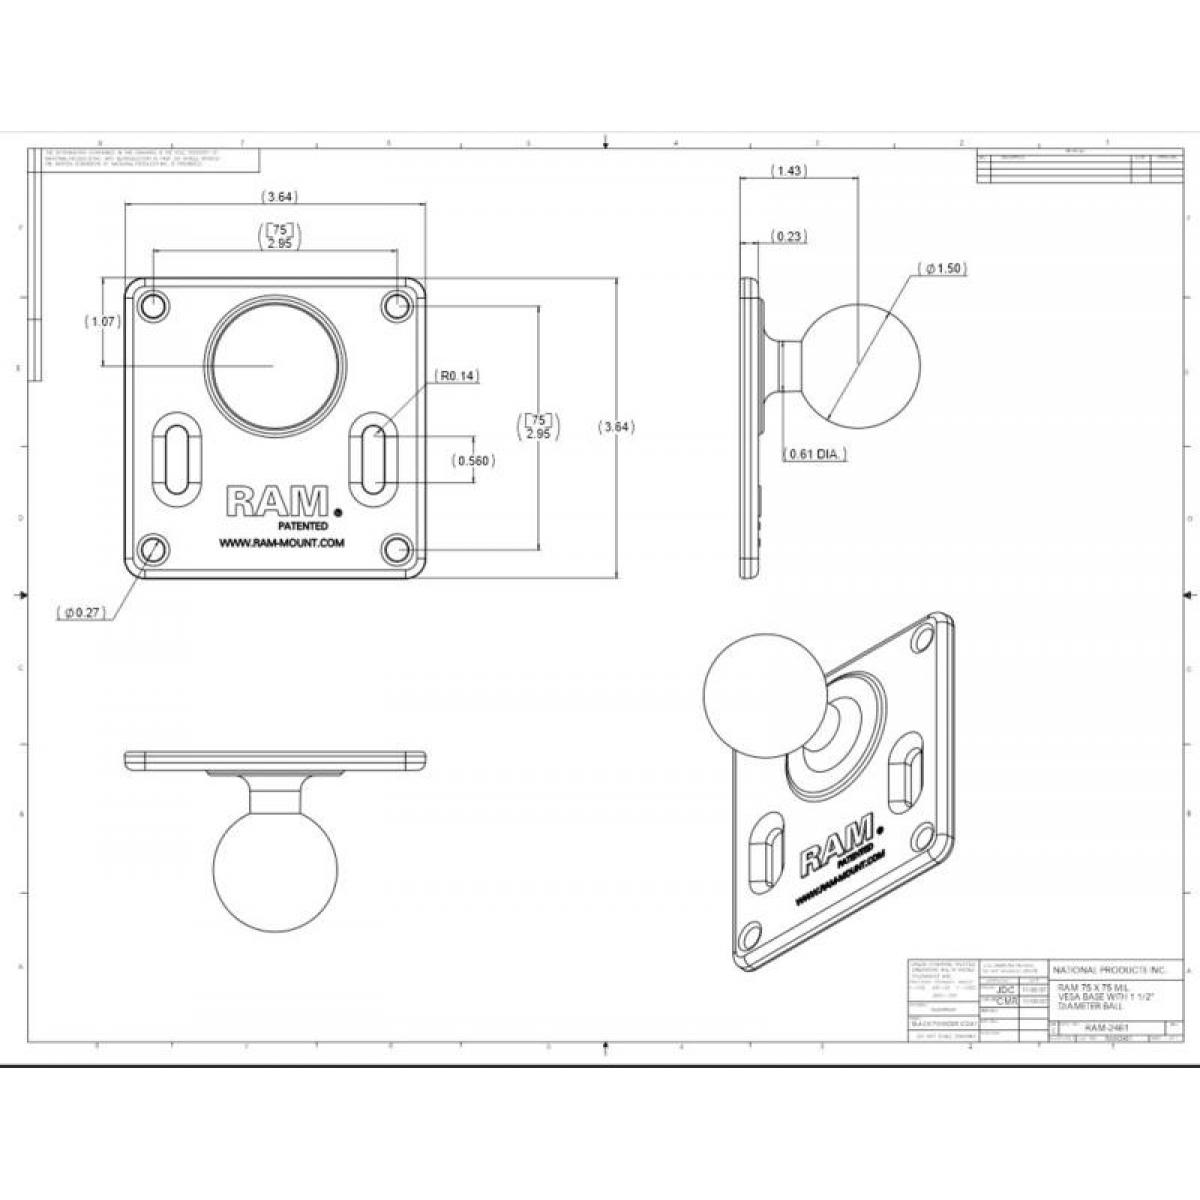 """RAM 100x100mm VESA Plate 1.5/"""" Ball Mount with Standard Arm and Round Base"""